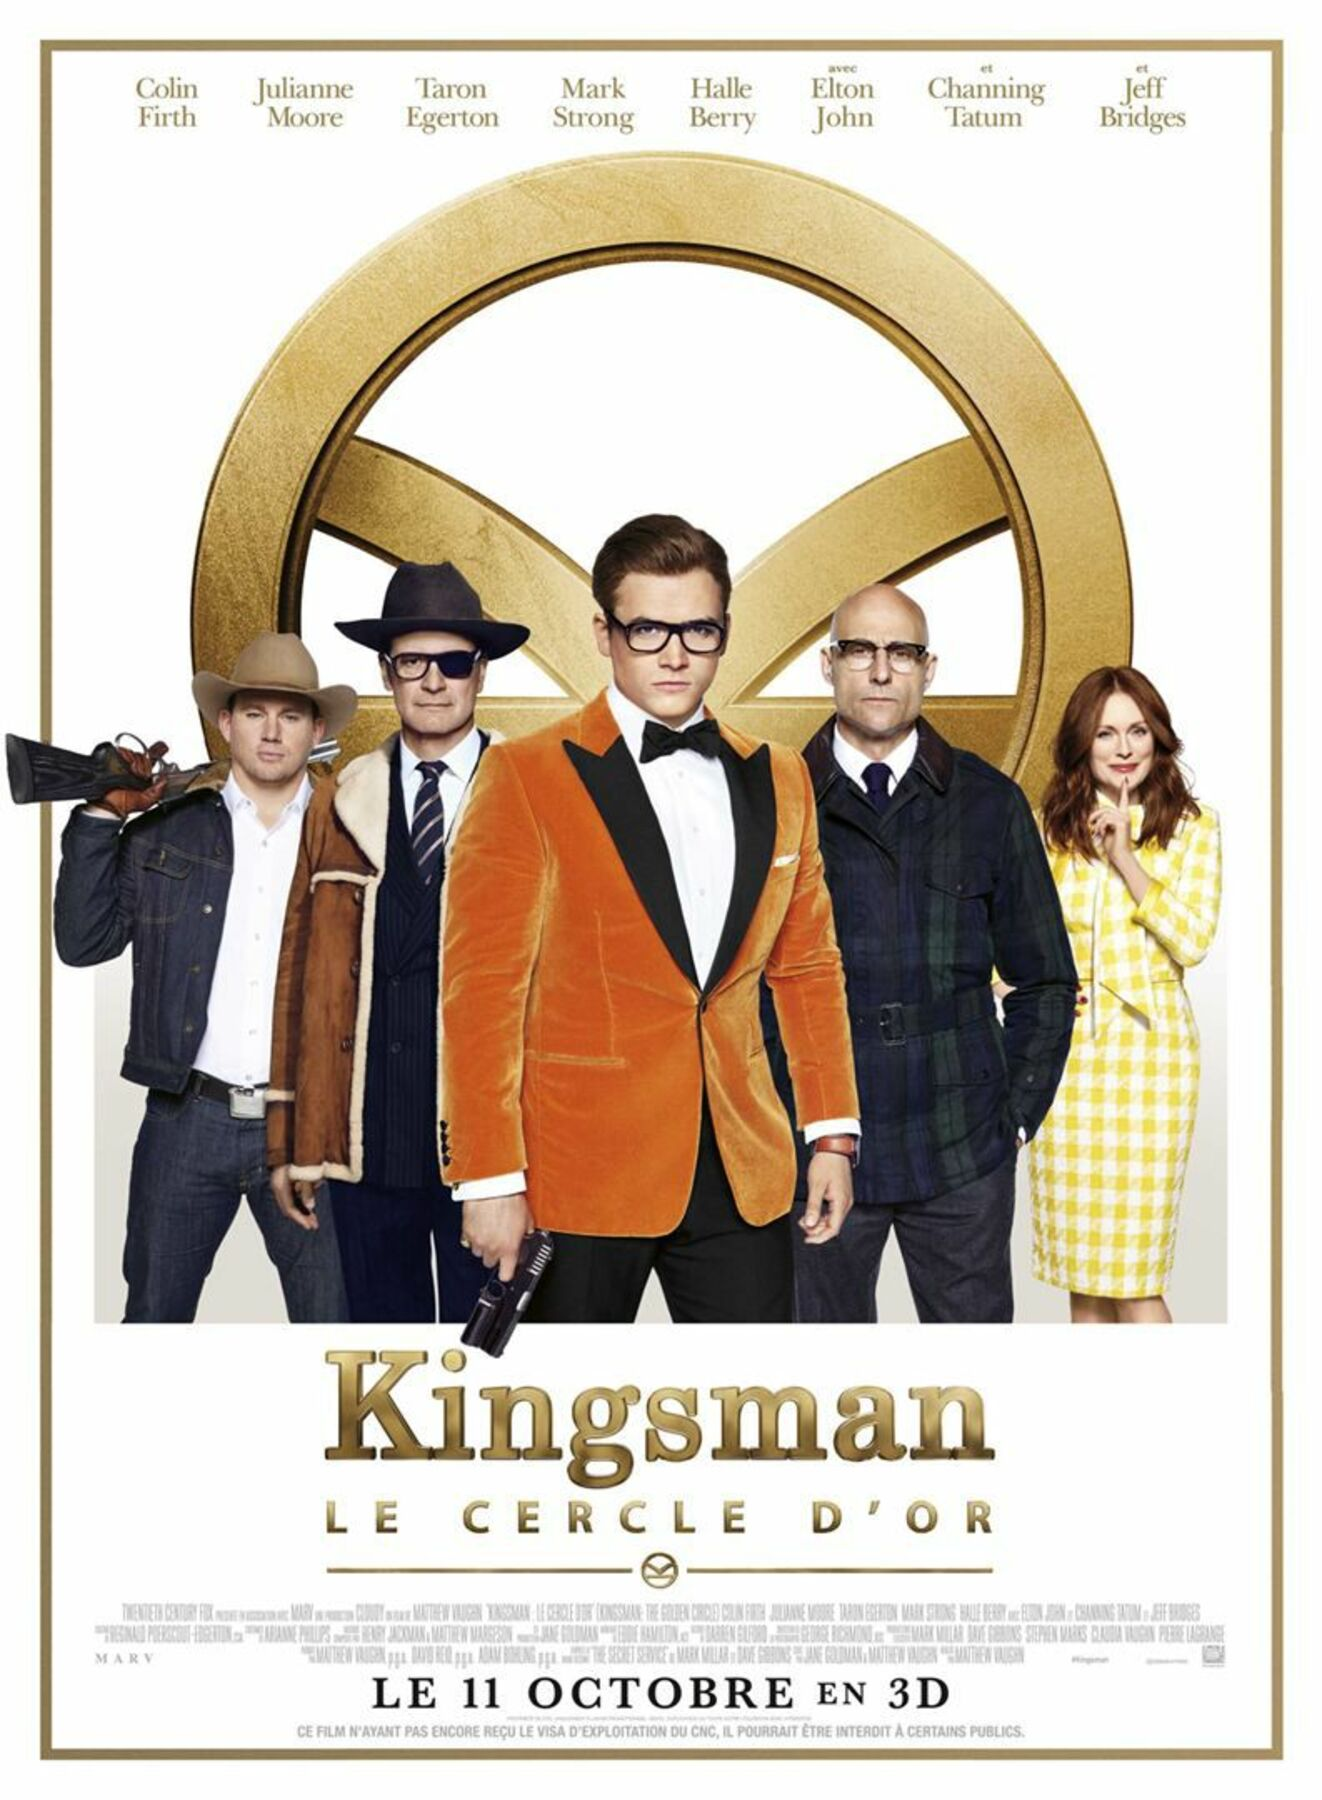 affiche poster kingsman cercle or golden circle disney fox